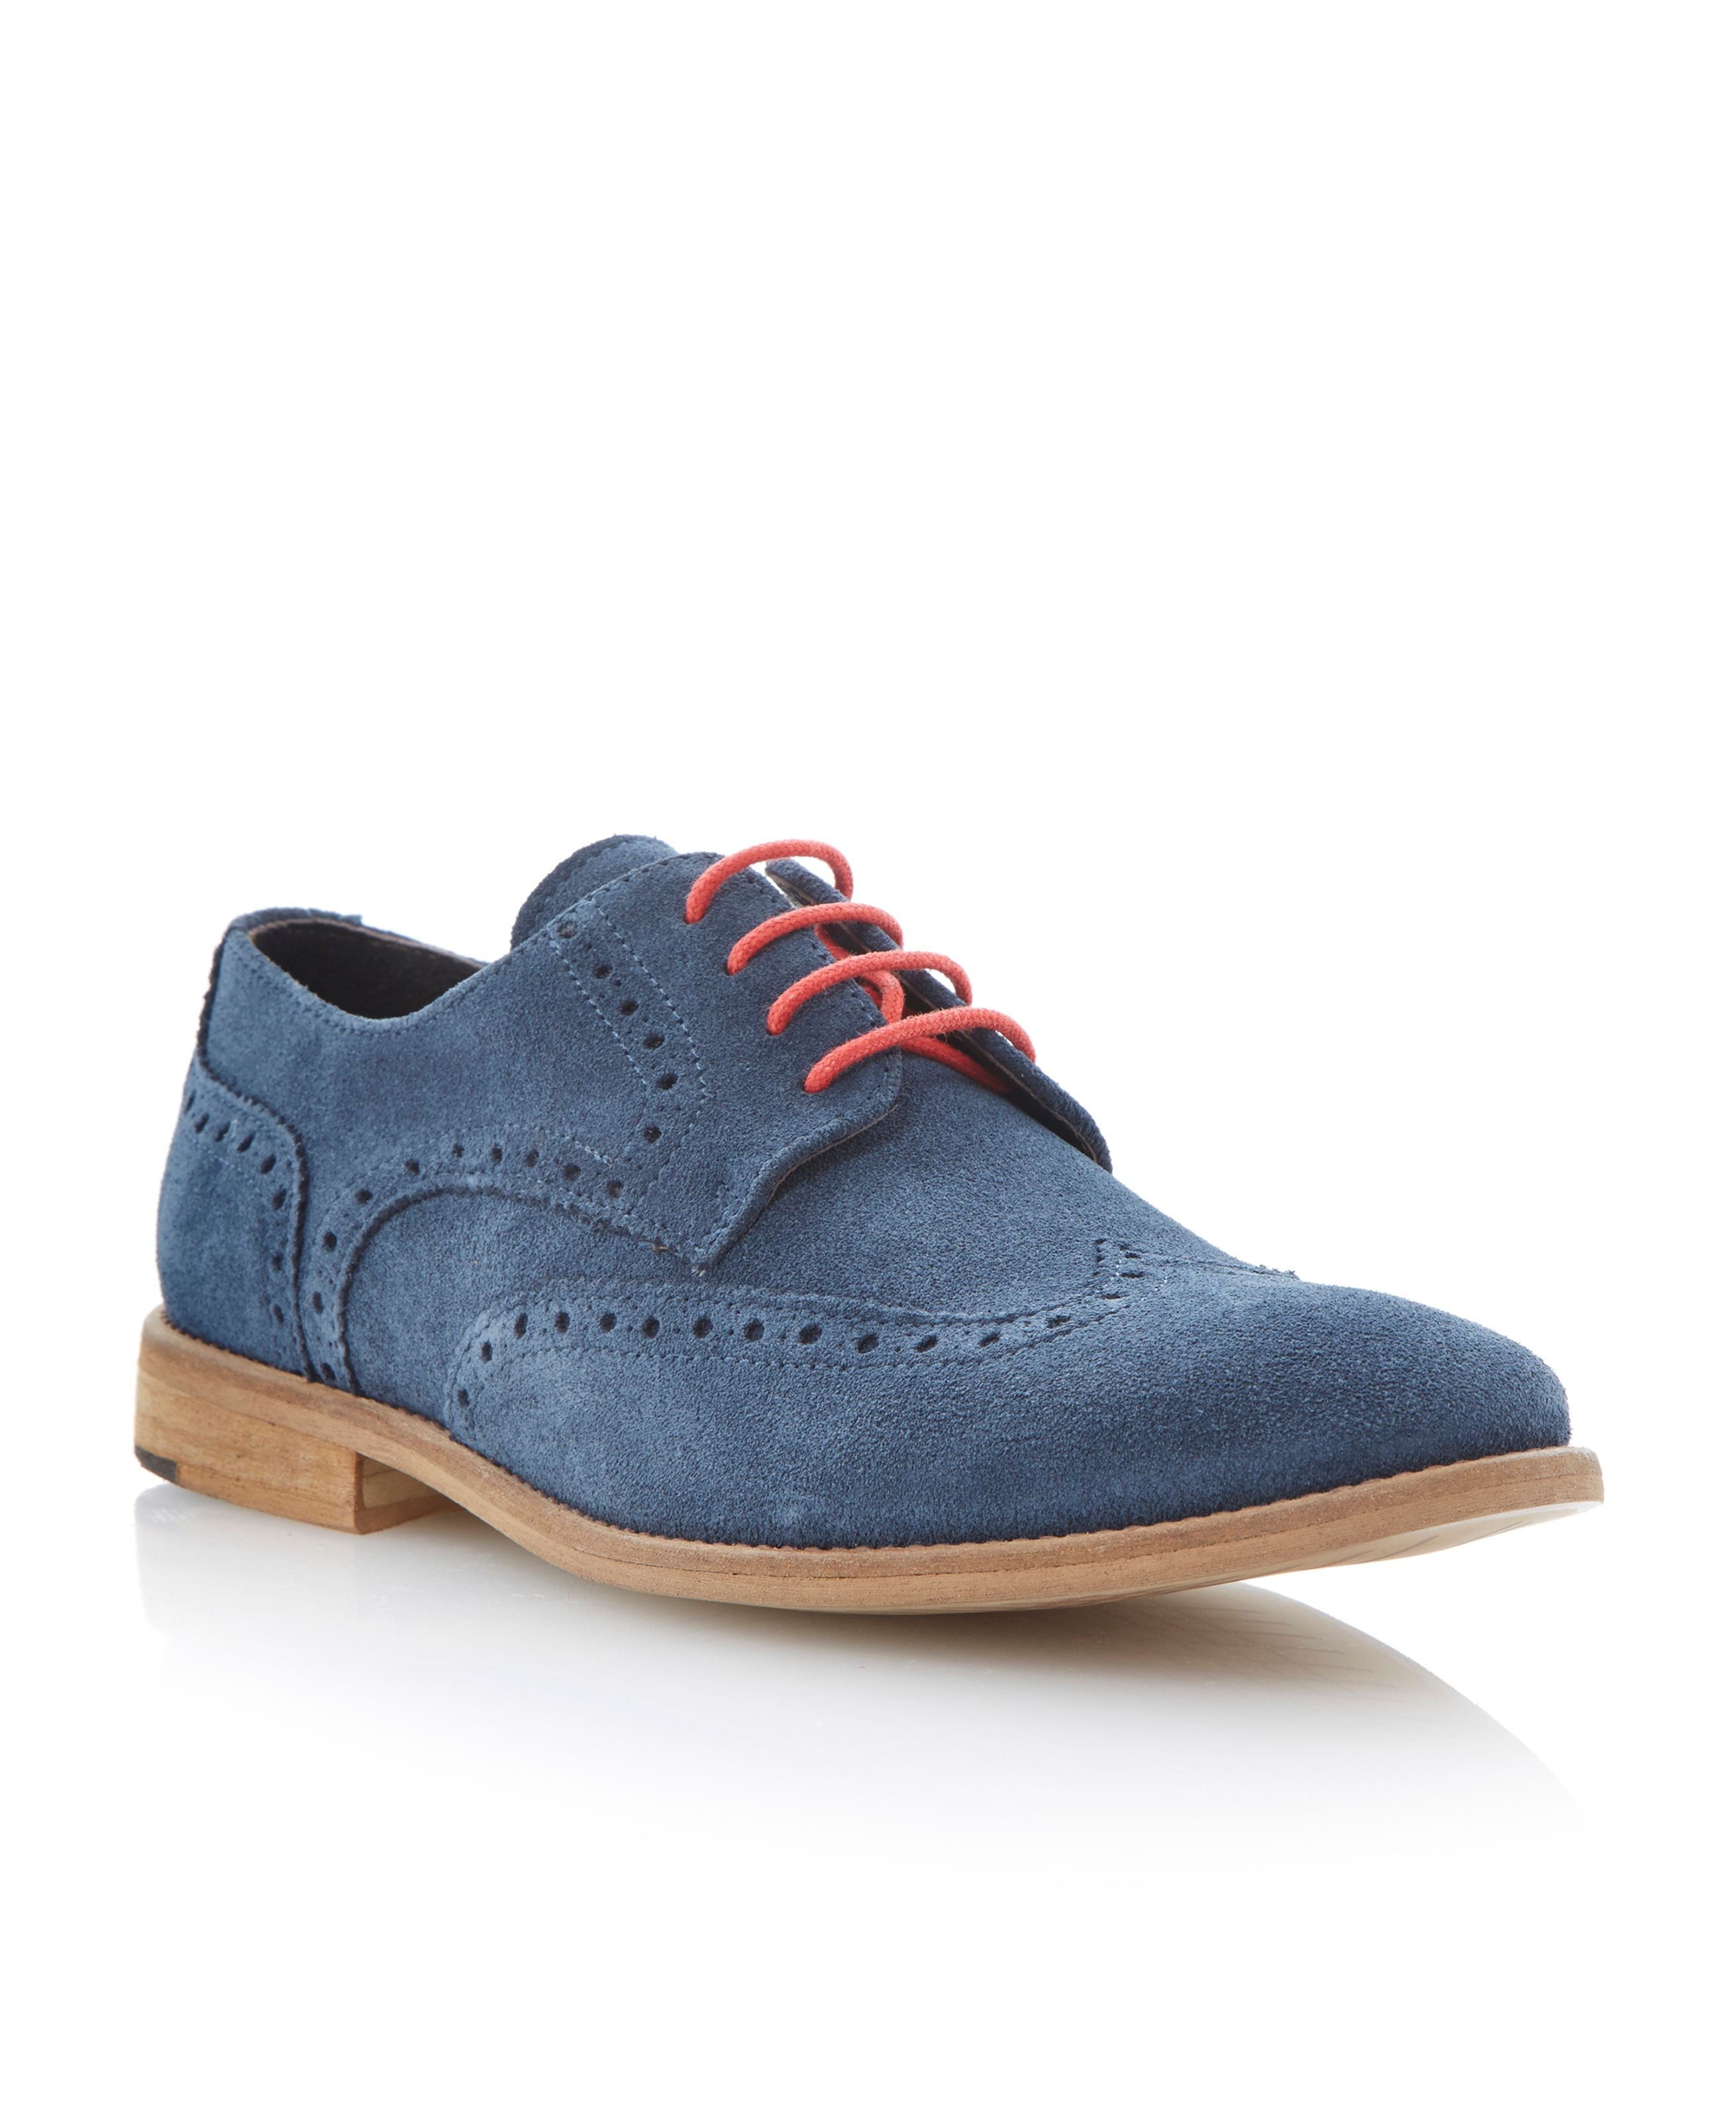 Aston suede lace up suede brogues